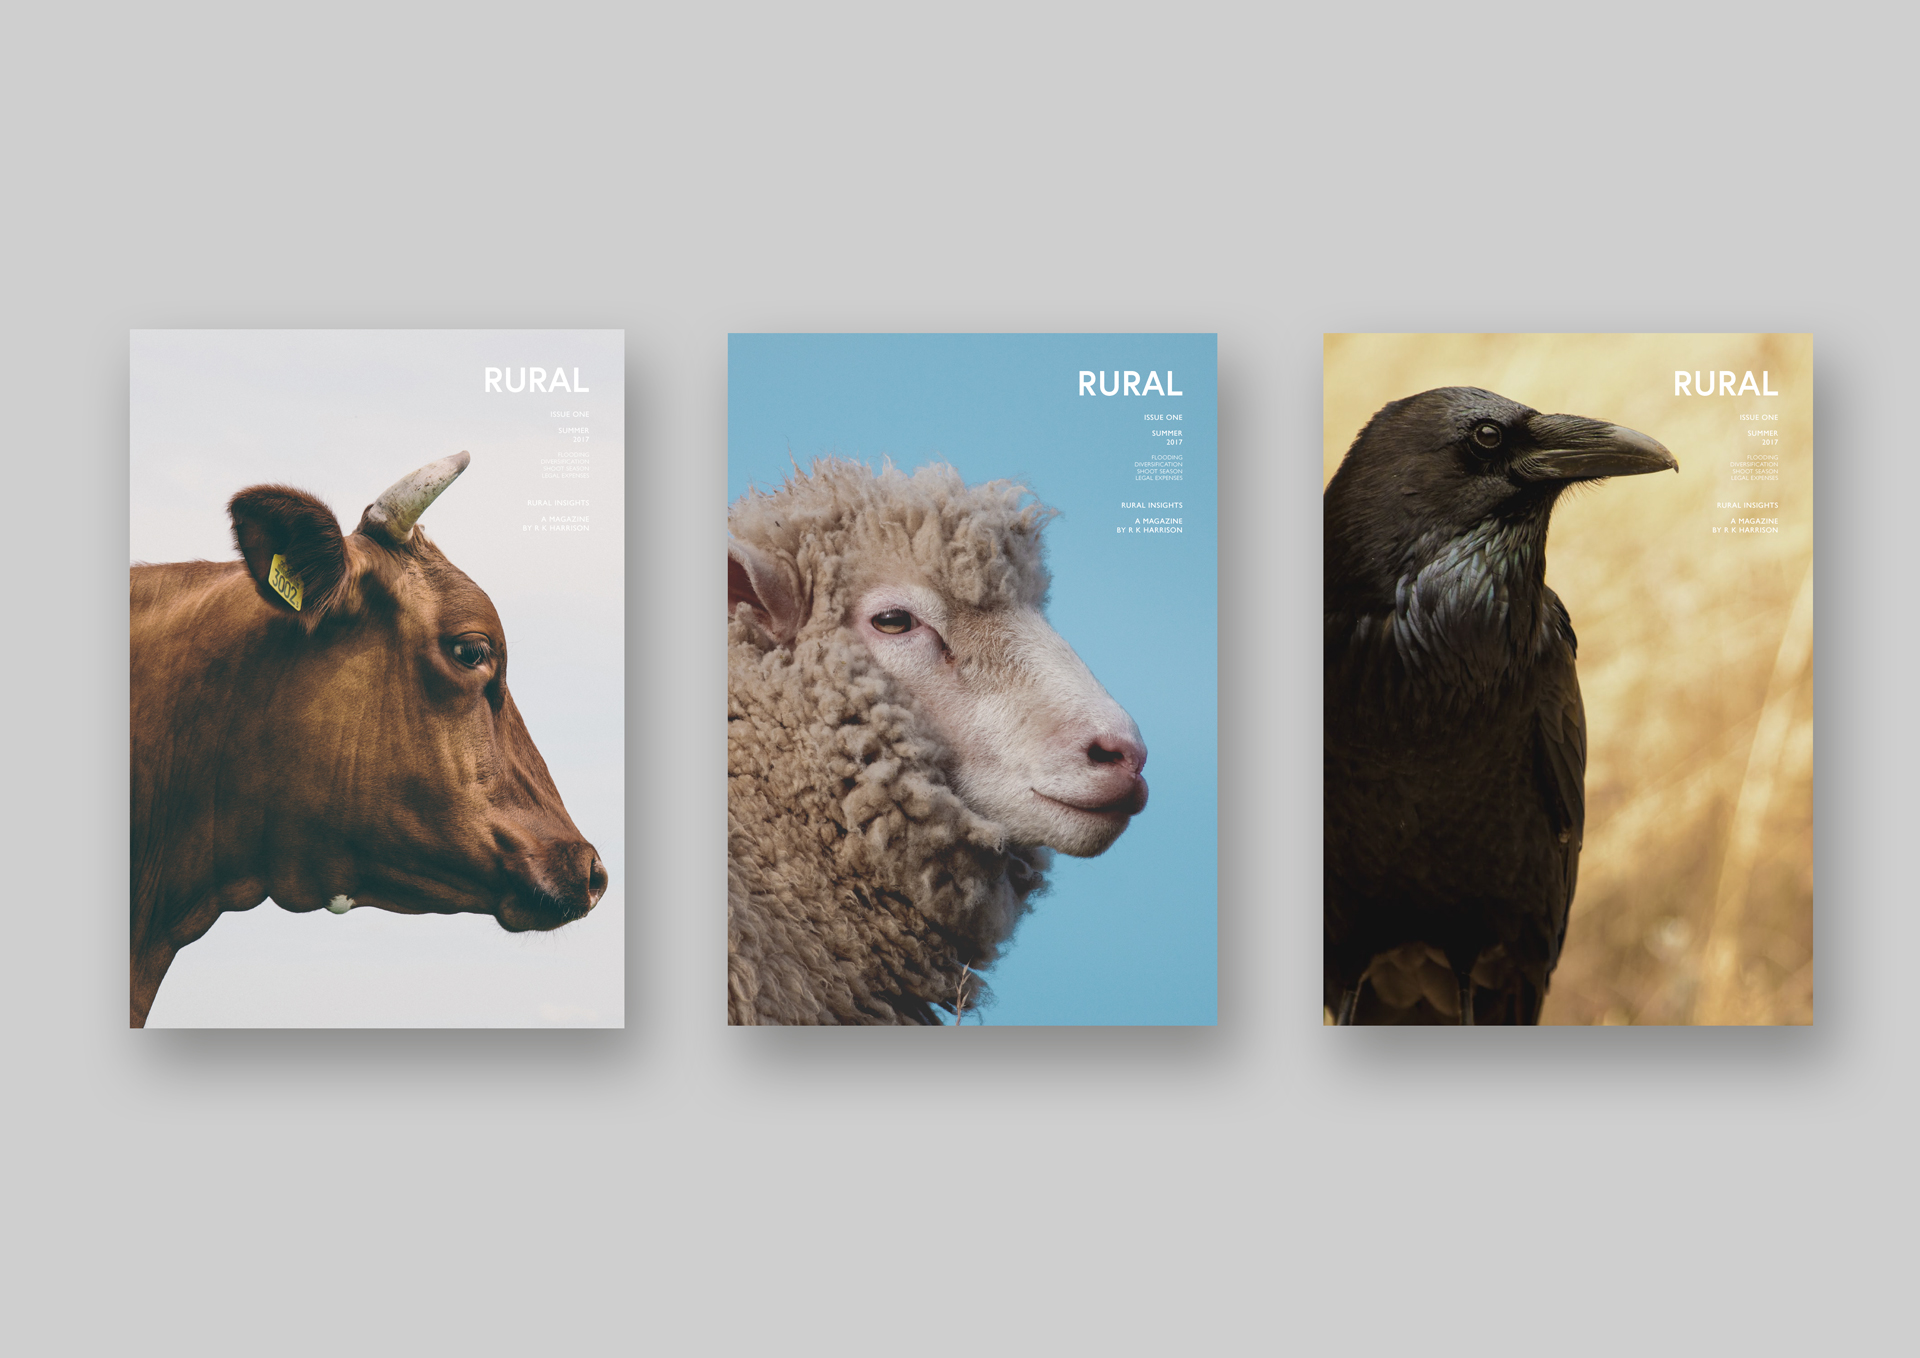 Rural Magazine covers